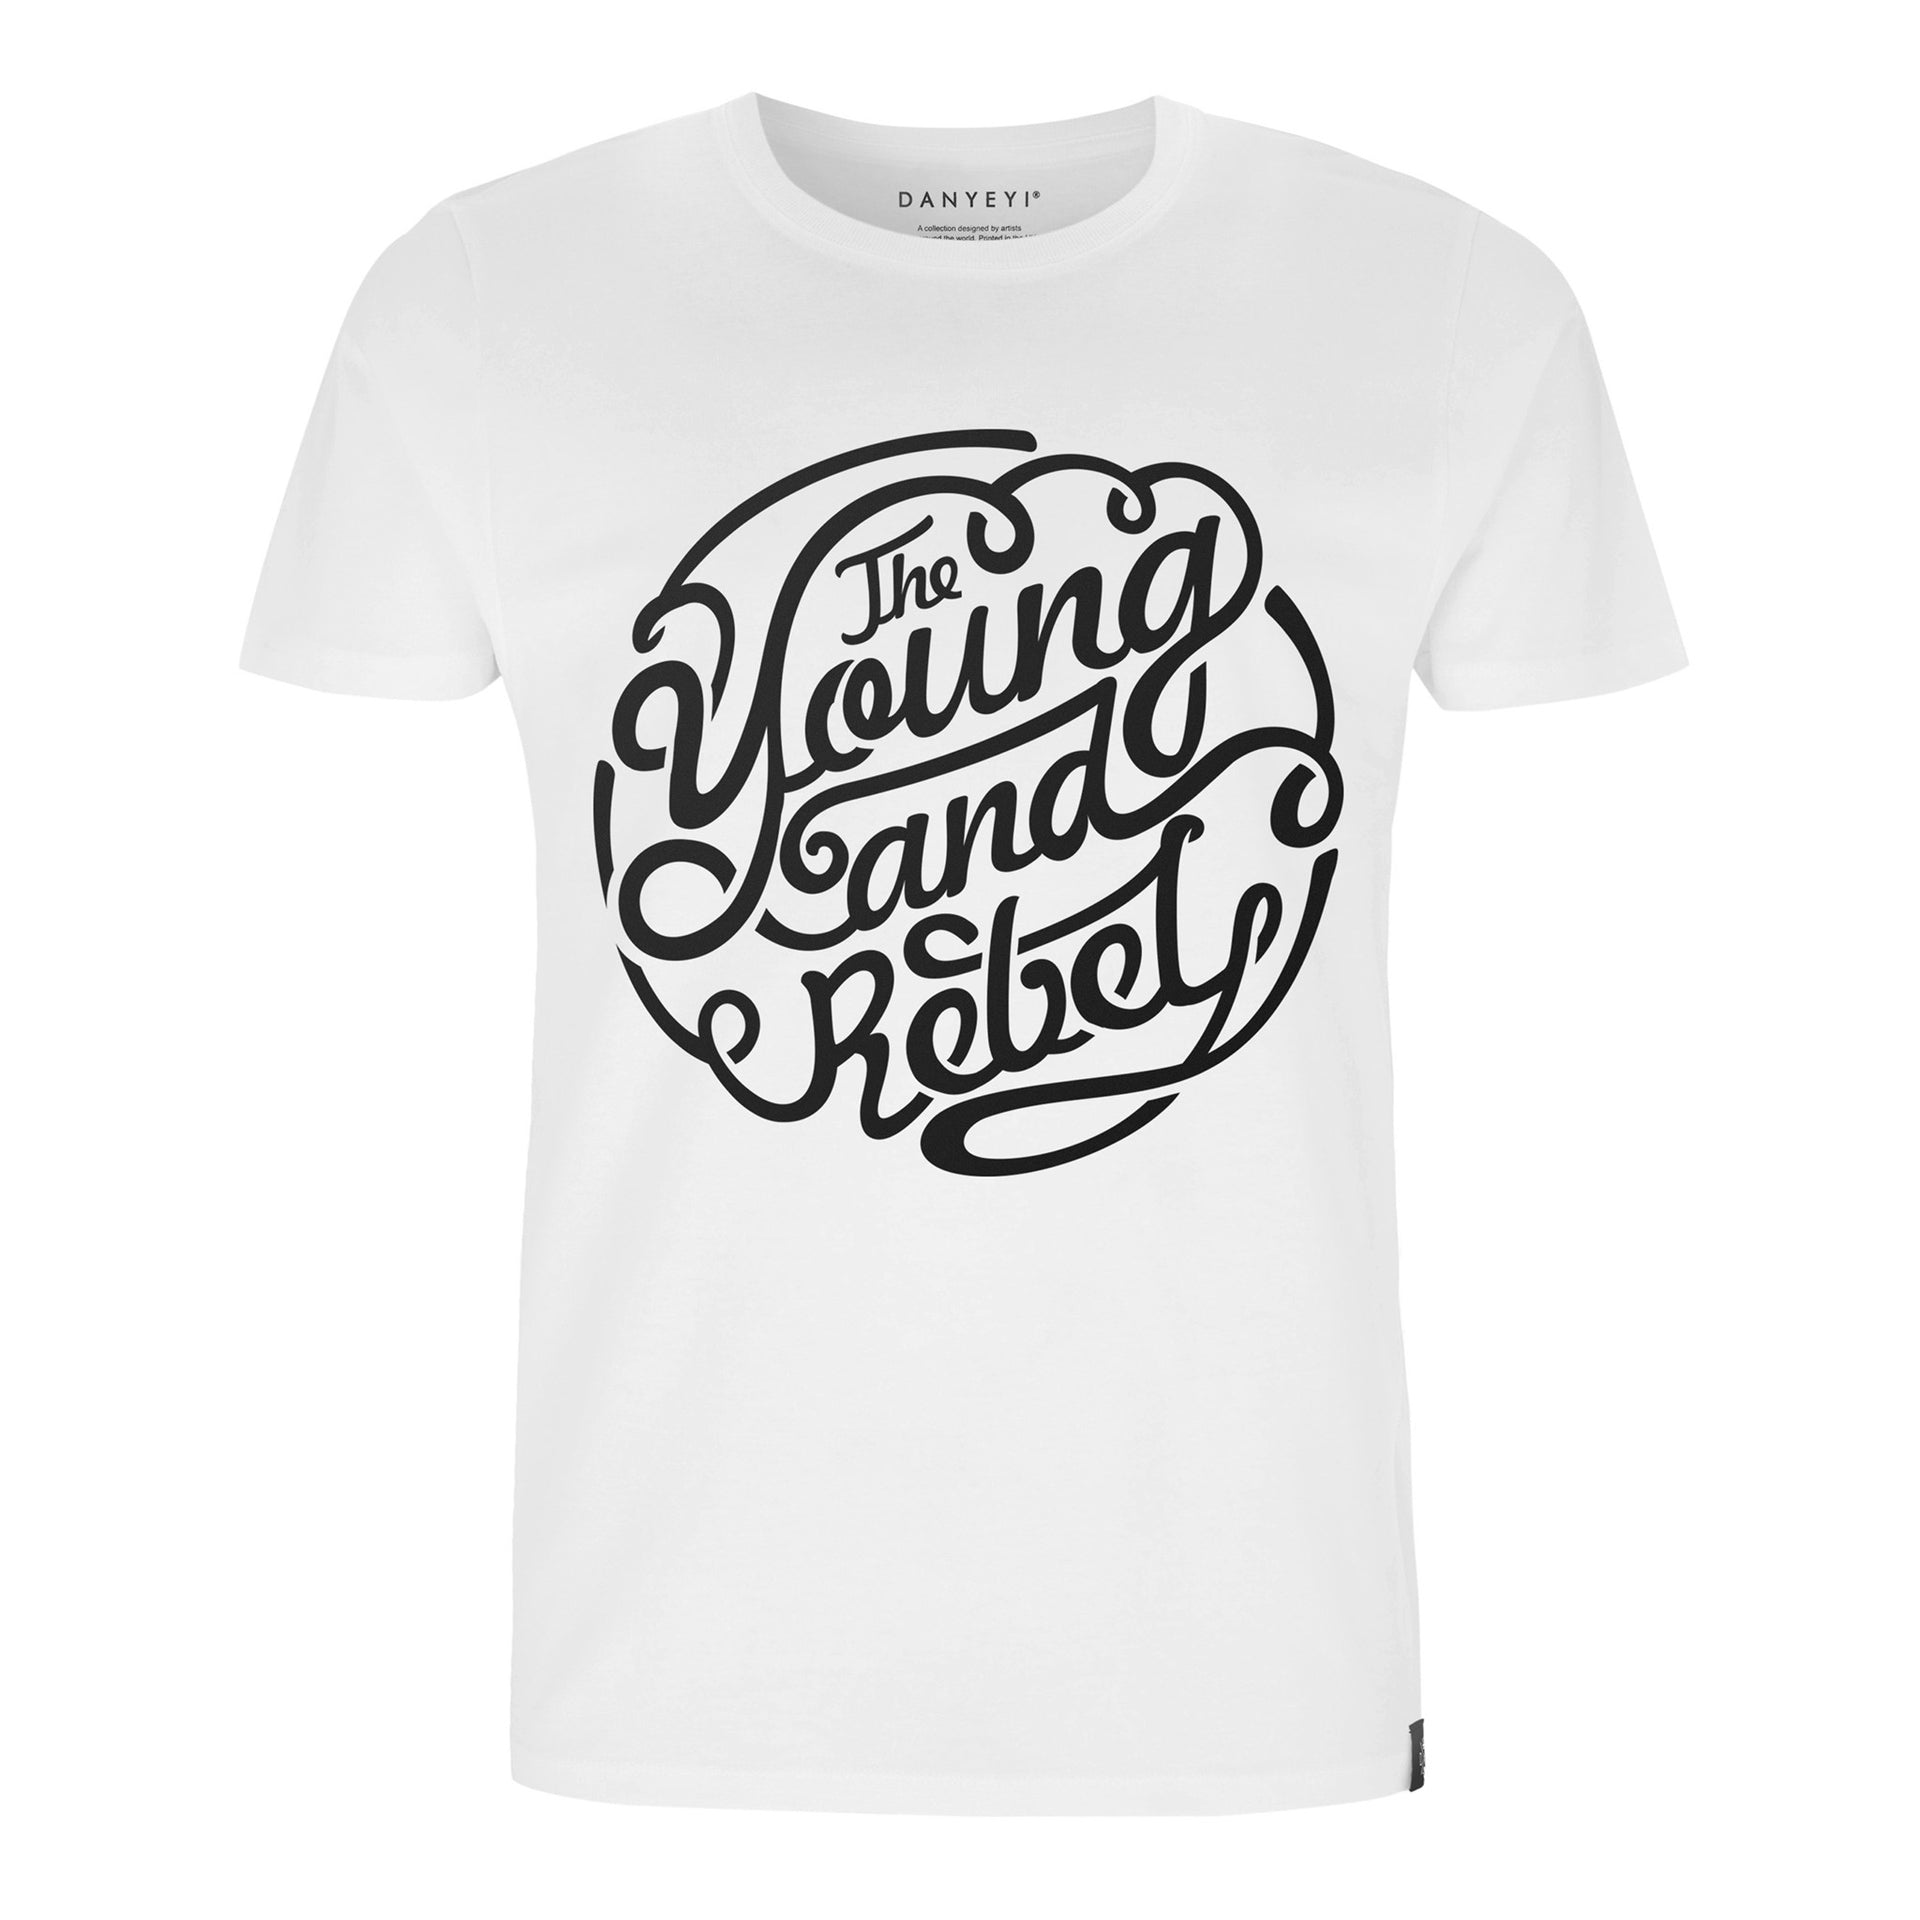 Rebel Youth - White / Black - Crew & Deep V Neck